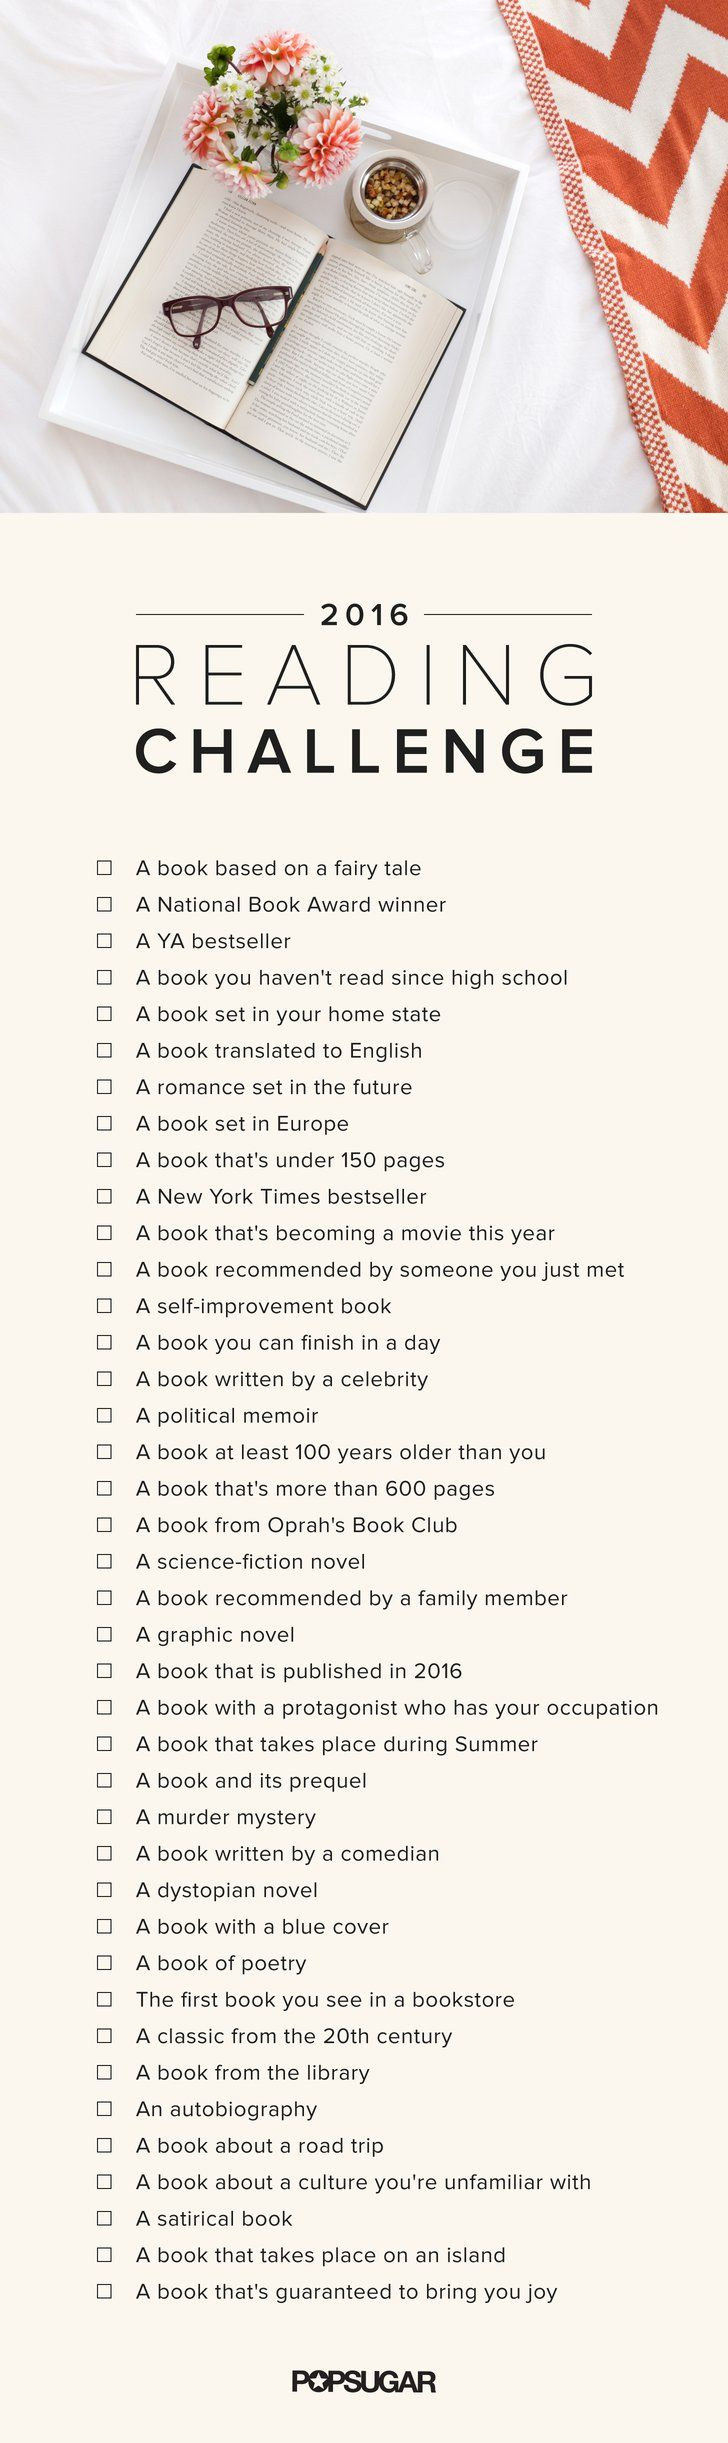 Take 2016's Ultimate Reading Challenge!  I think I've missed this for 2016 but 2017 is just around the corner.